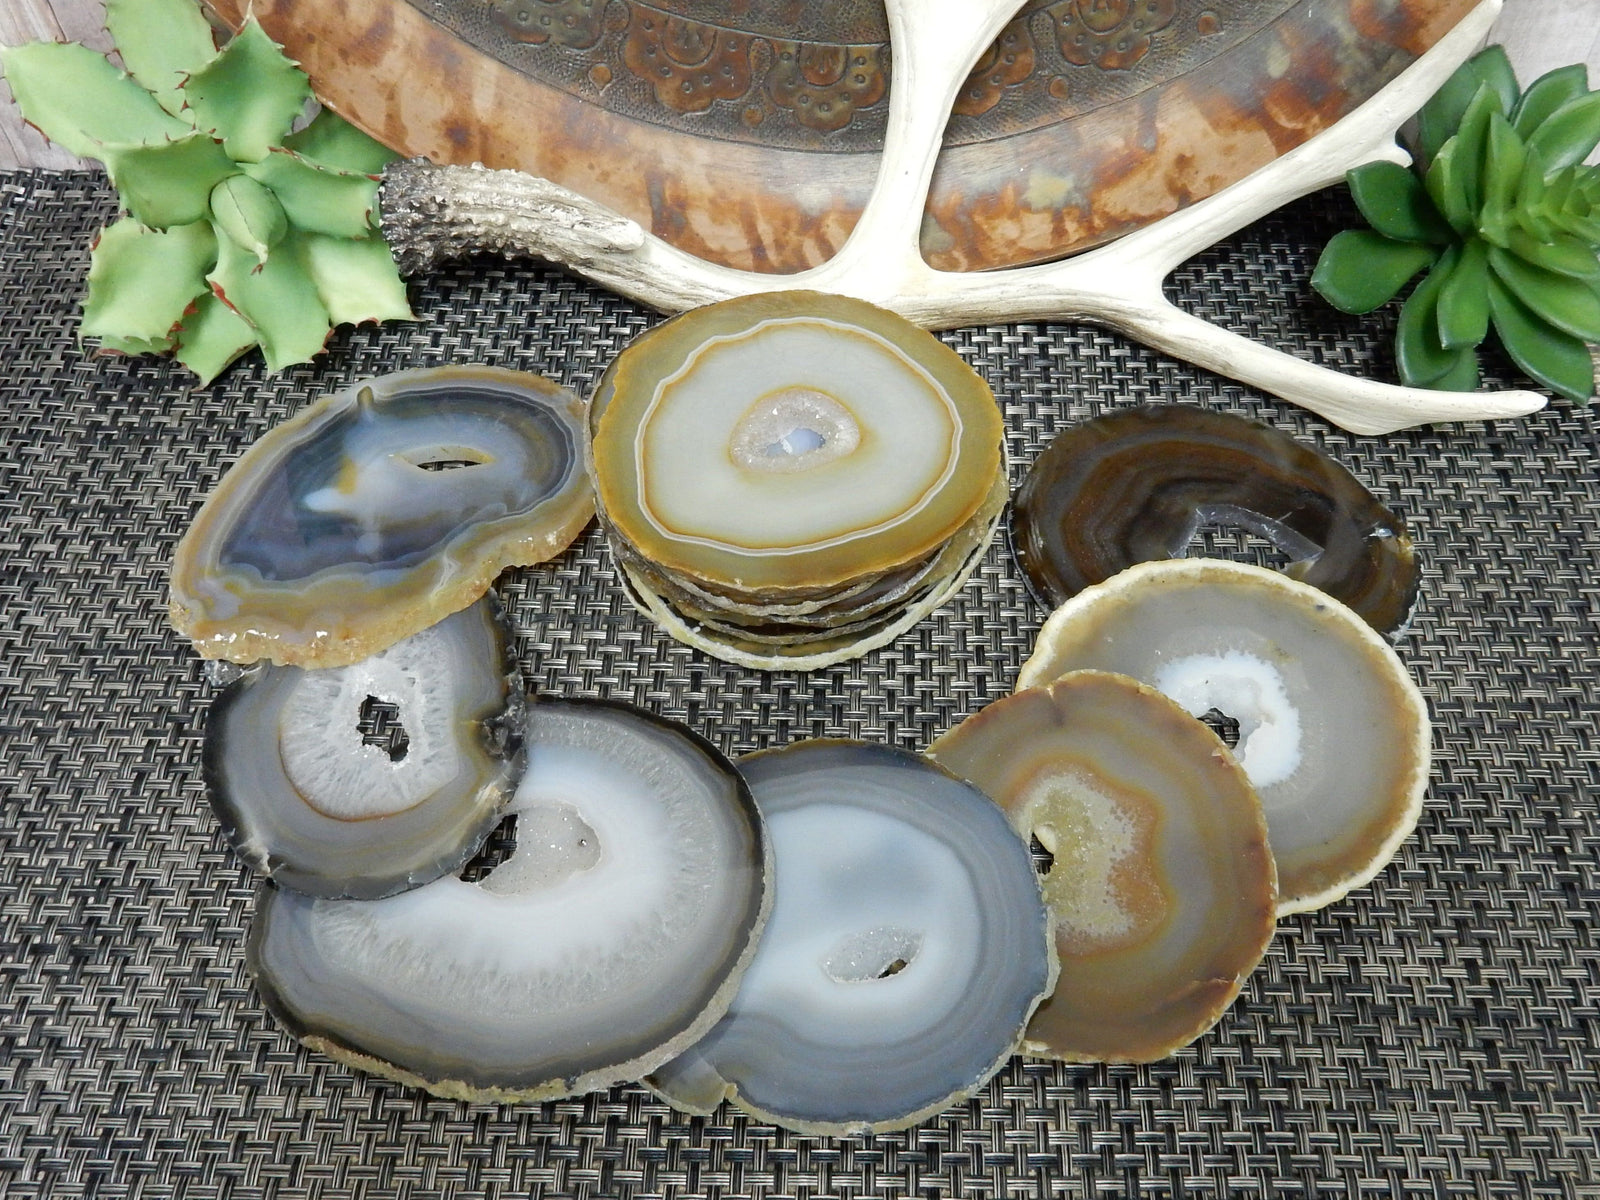 Agate Slices - Natural Dark Agate Slices - Extra Grade Polished Agate - Coaster Size With Open Druzy Center - Gorgeous Sparkle And Markings!